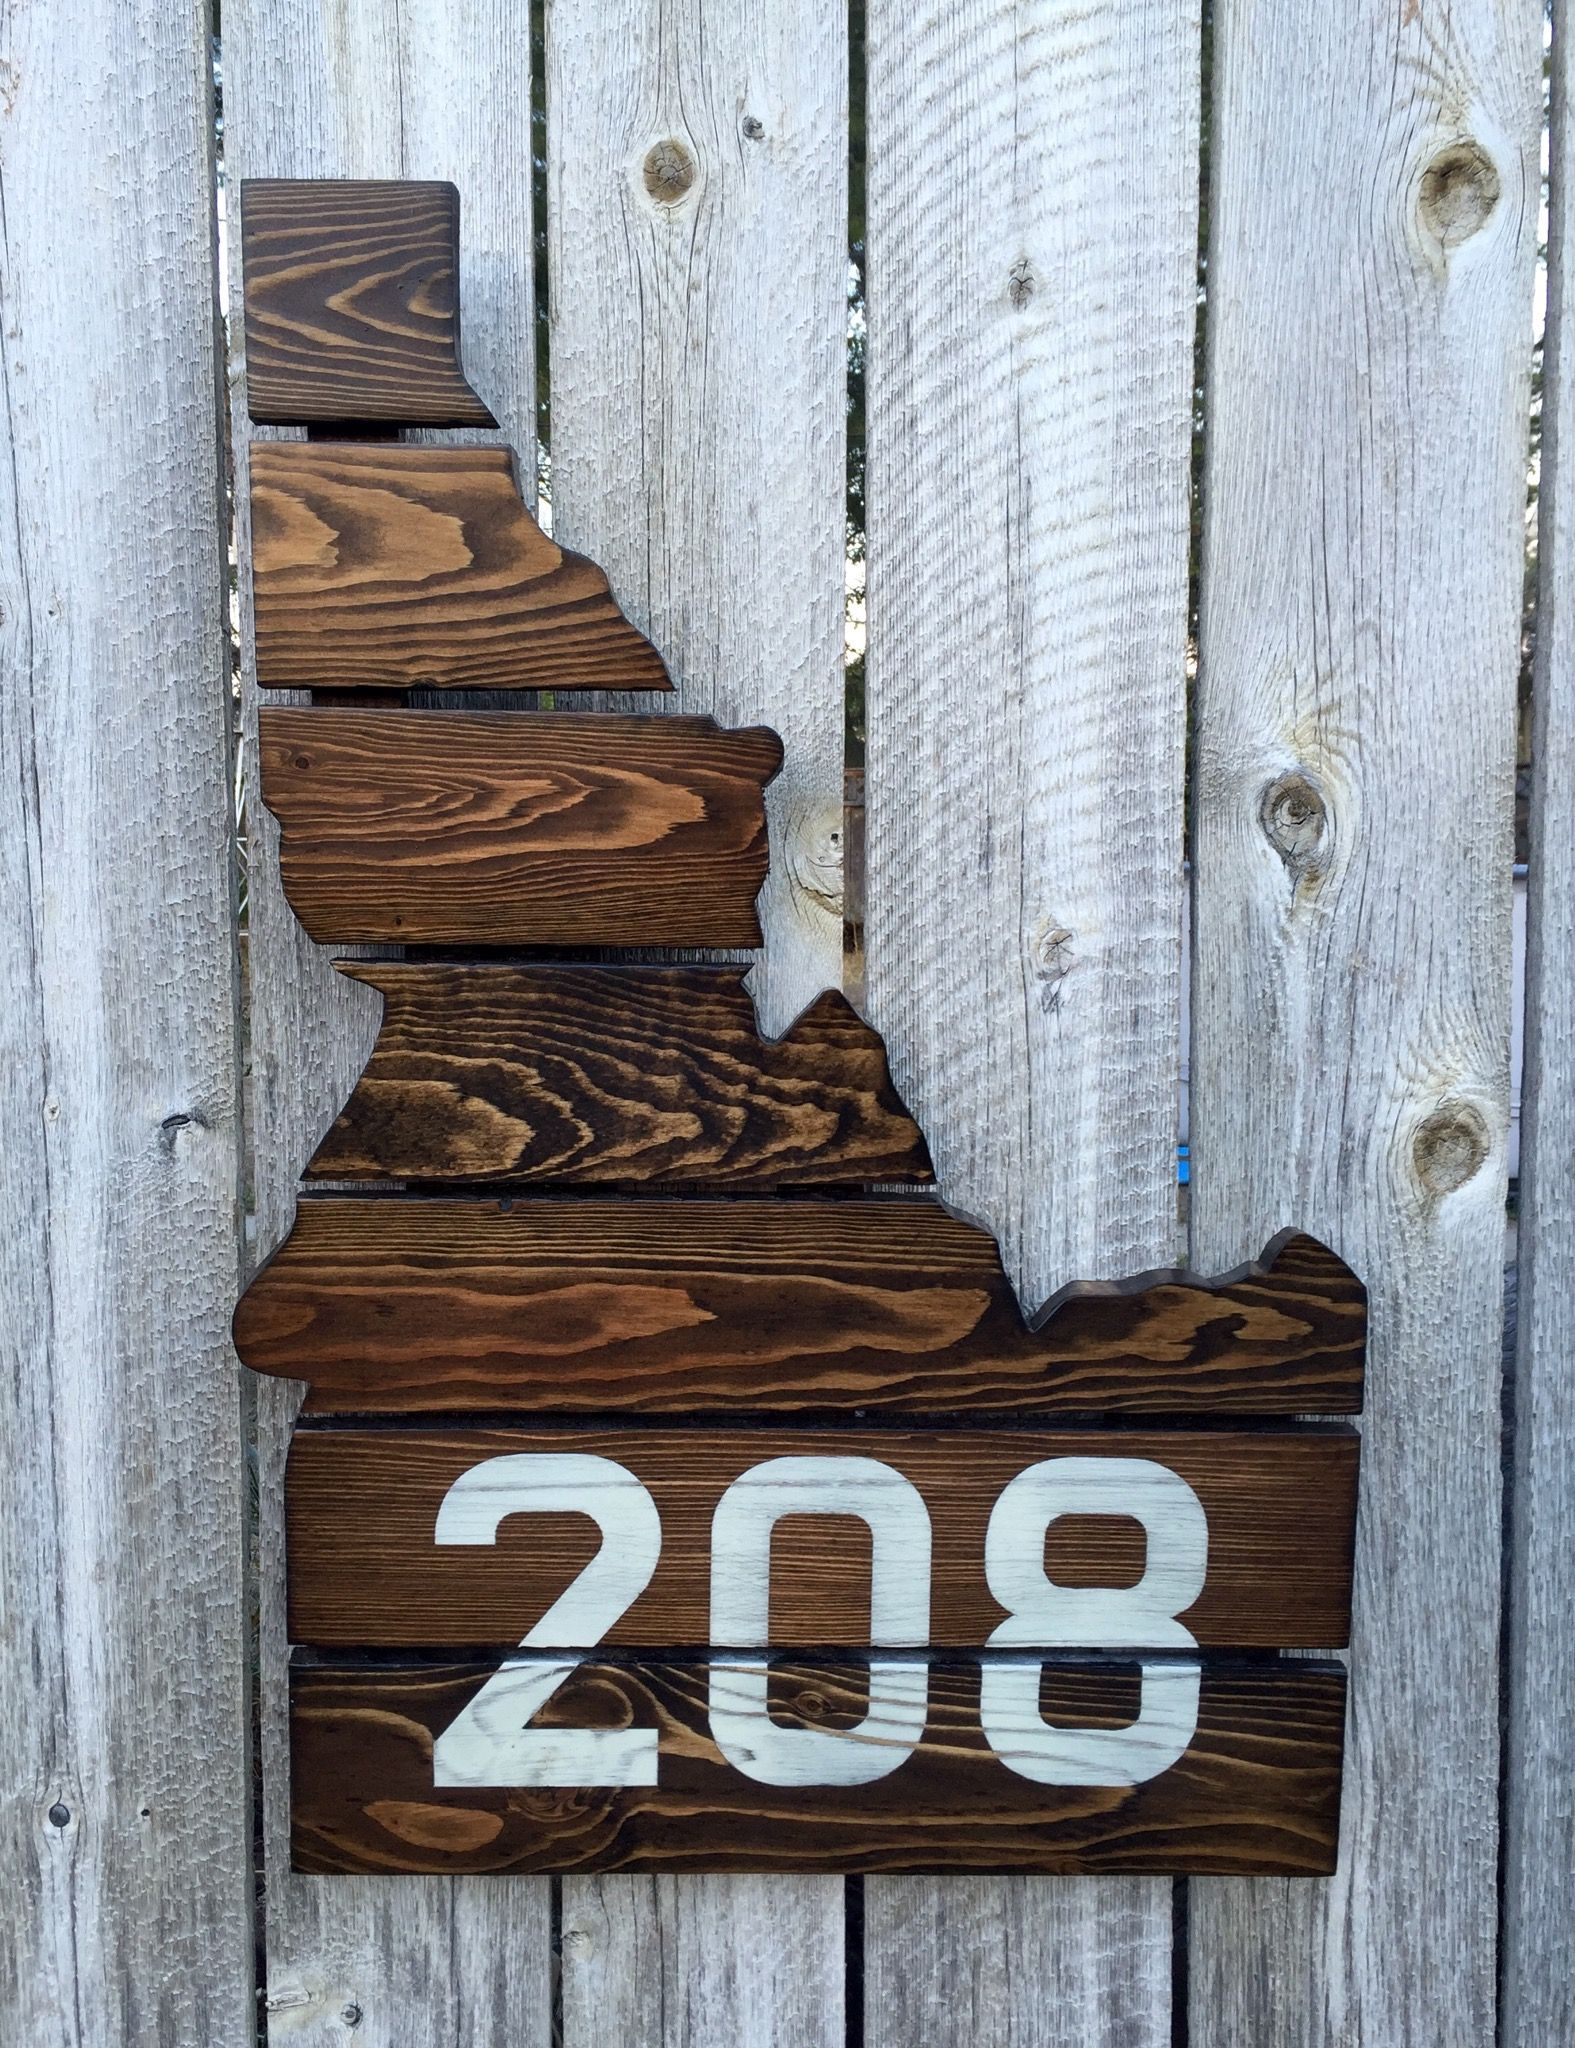 idaho 208 | recycled pallets, upcycled home decor, pallet